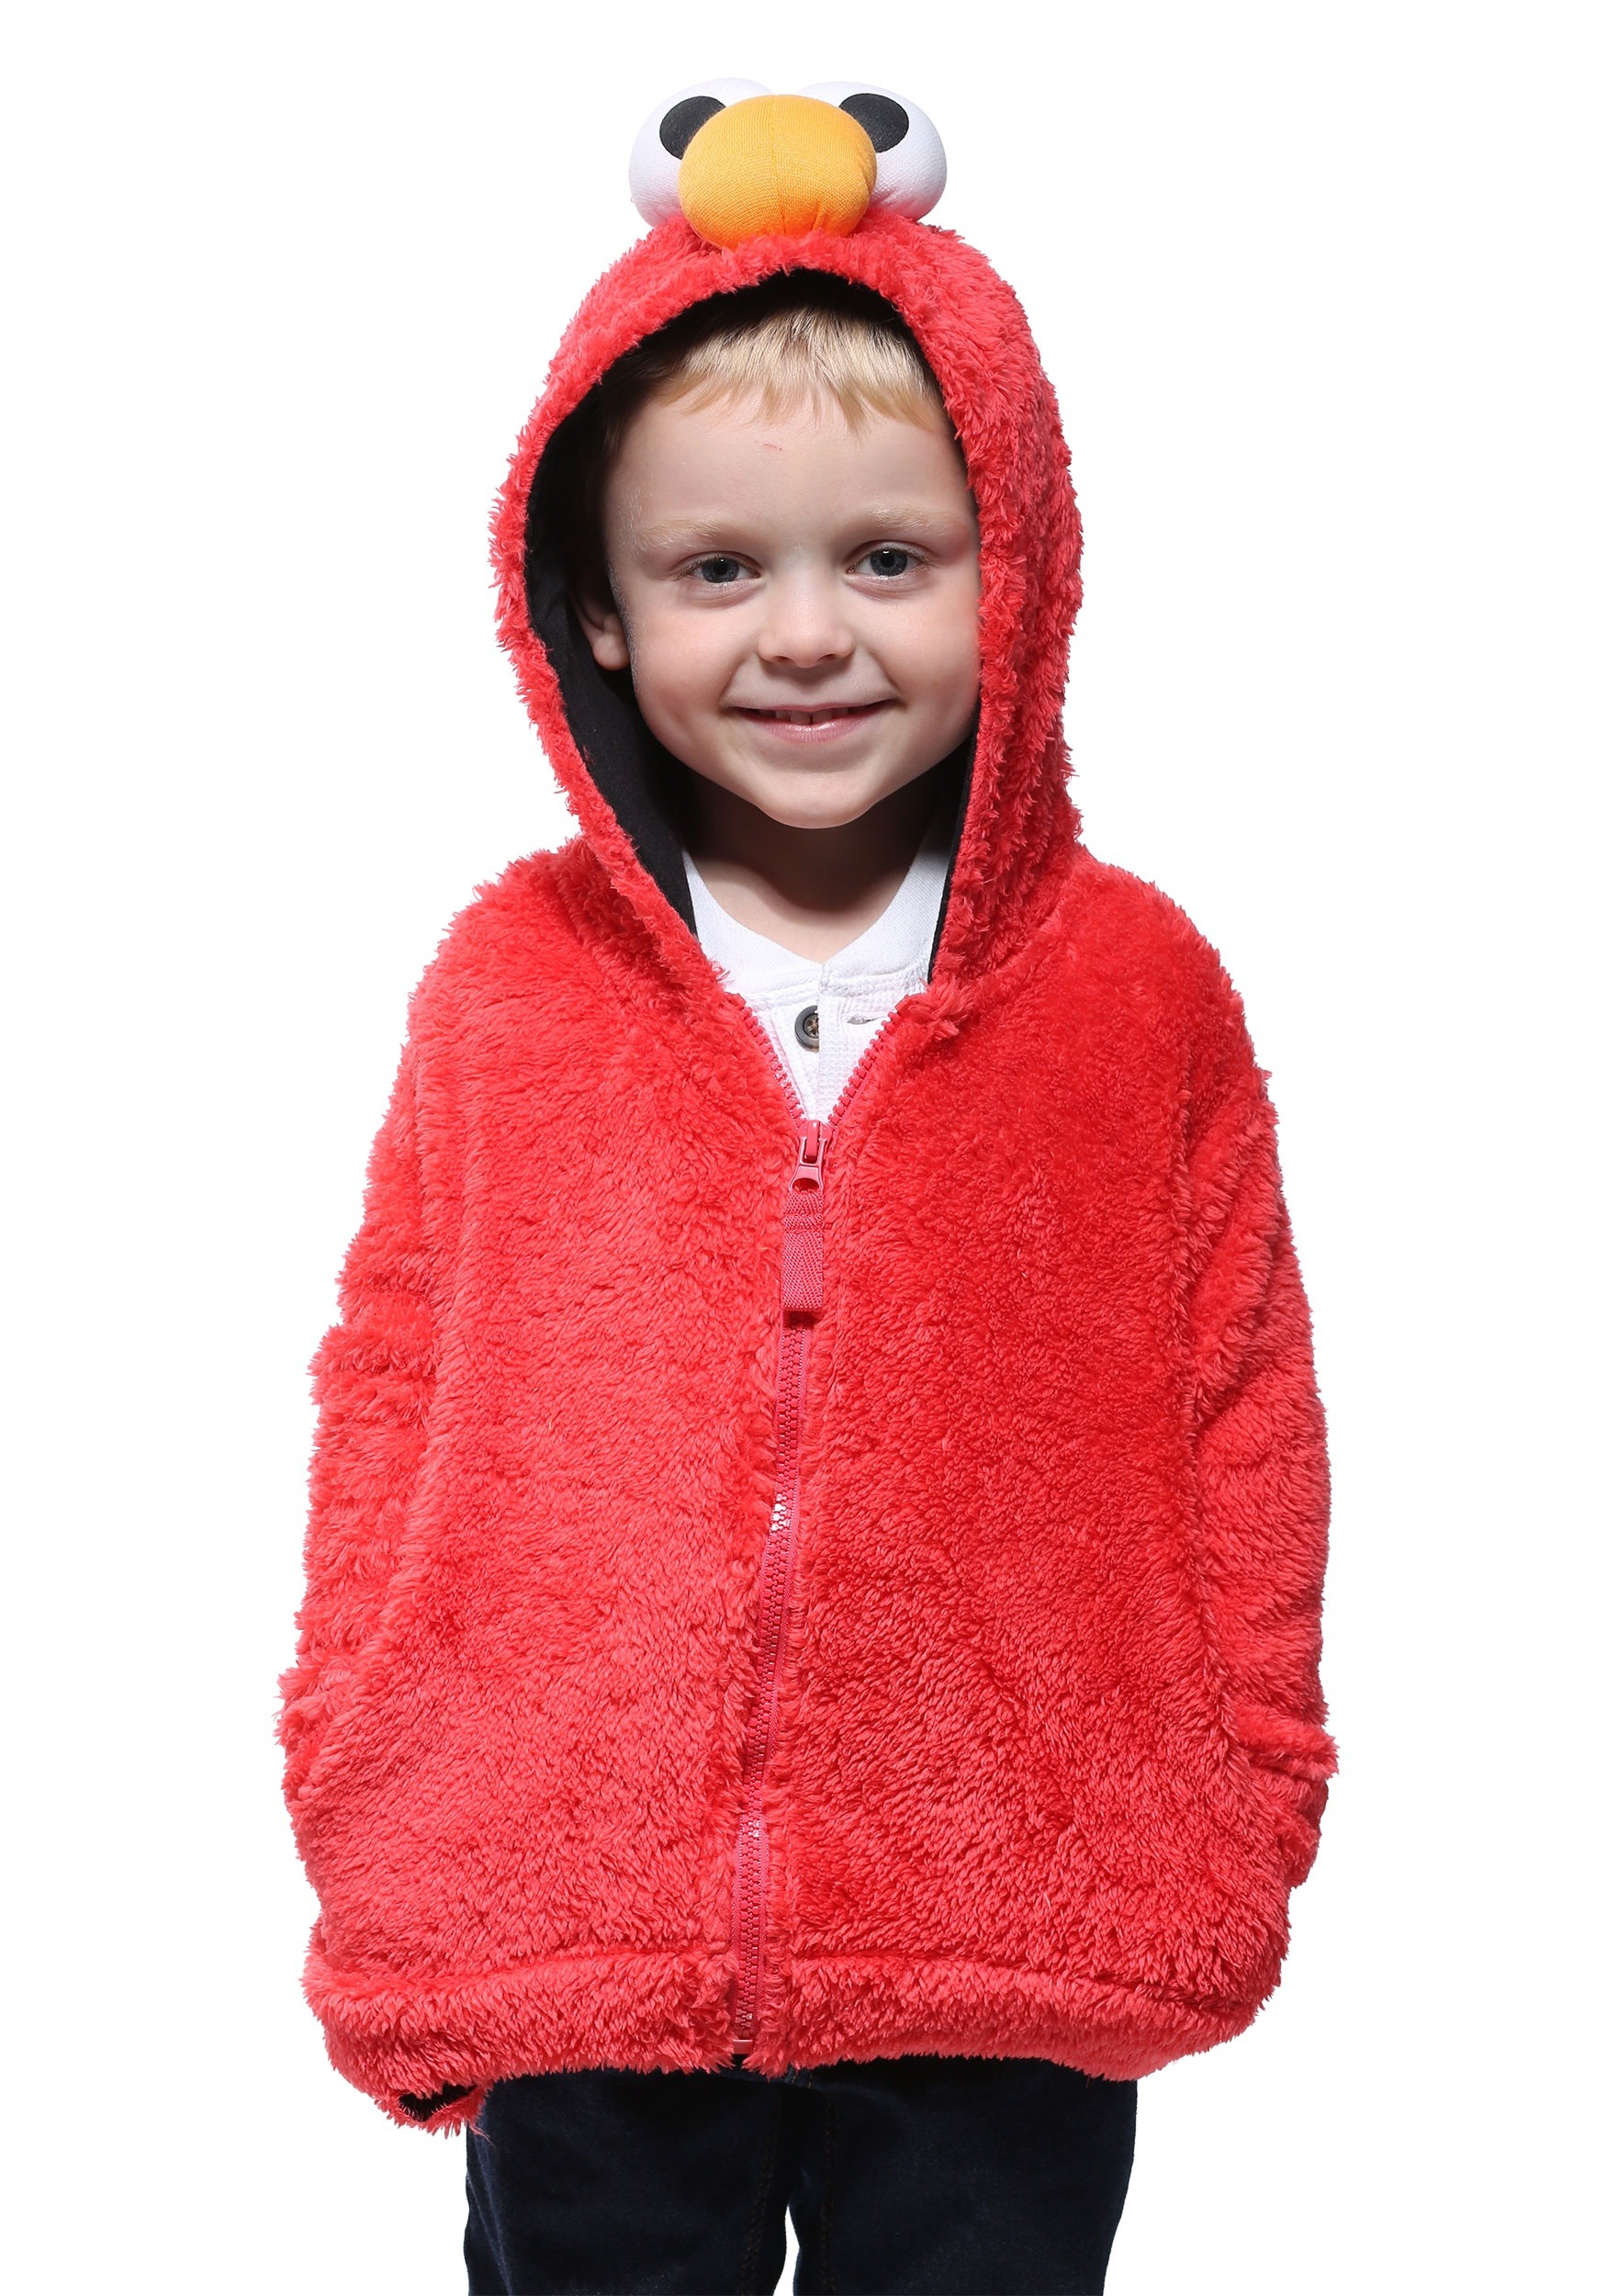 Sesame Street Elmo Faux Fur Costume Hoodie for Kids